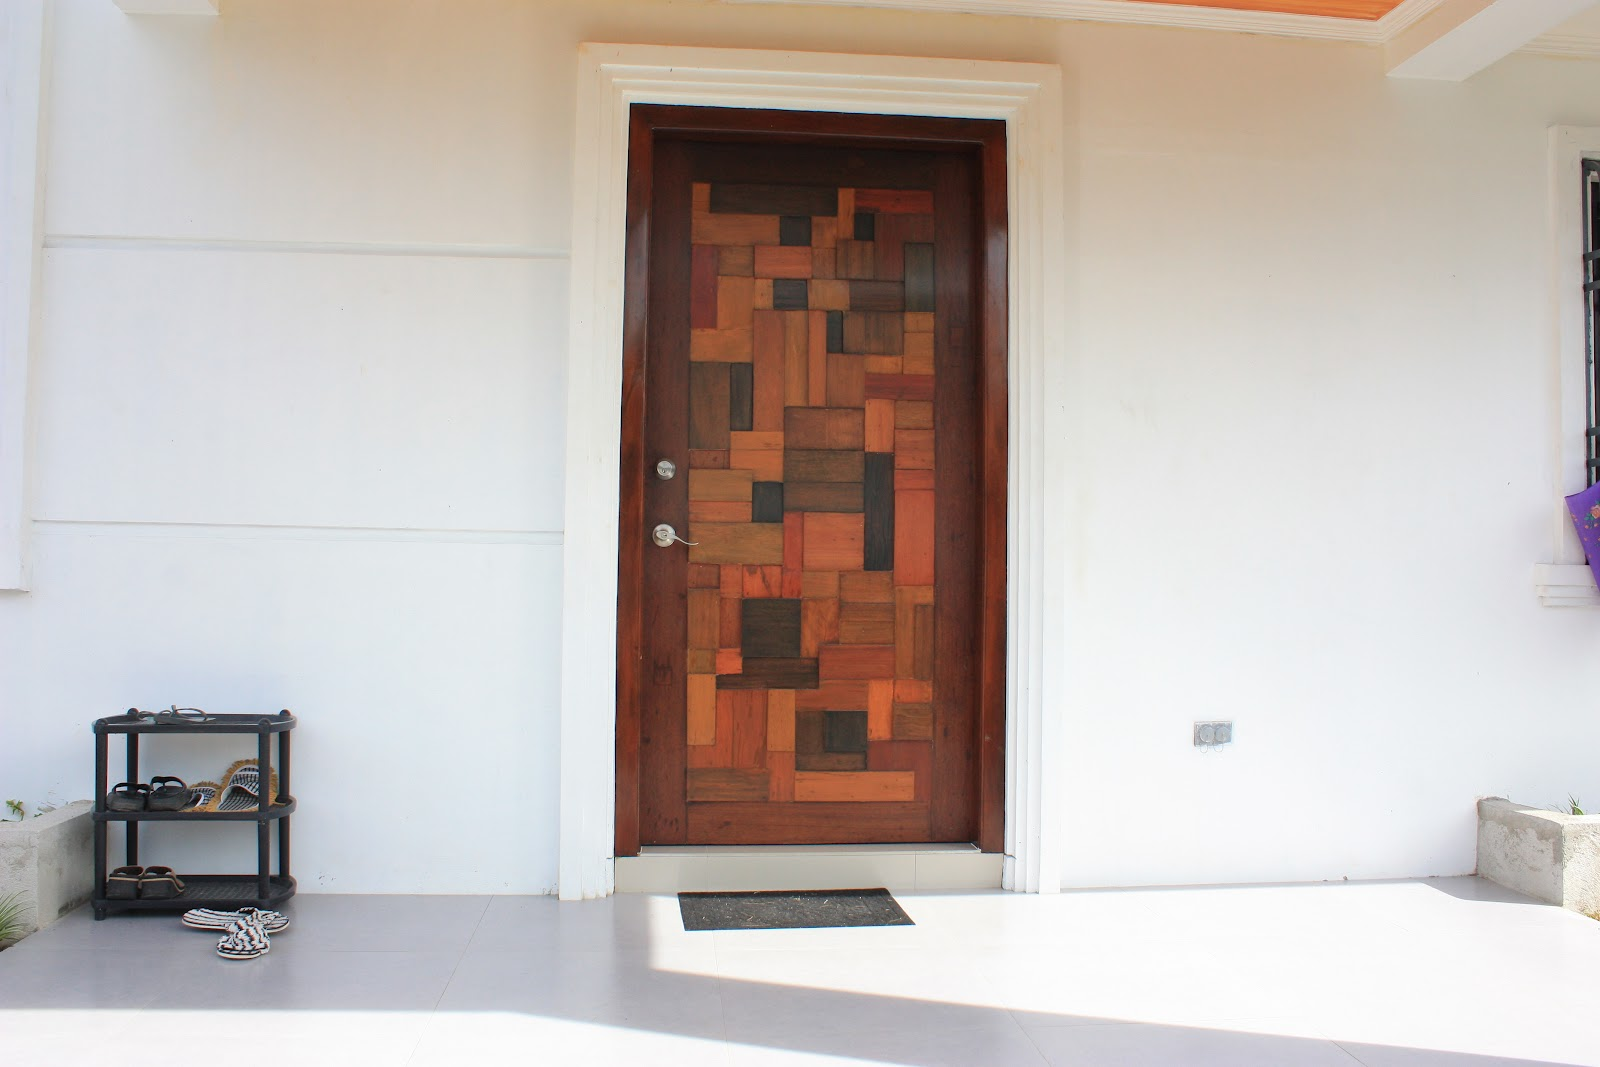 Design Inspirations: Home Entrance / Front Door